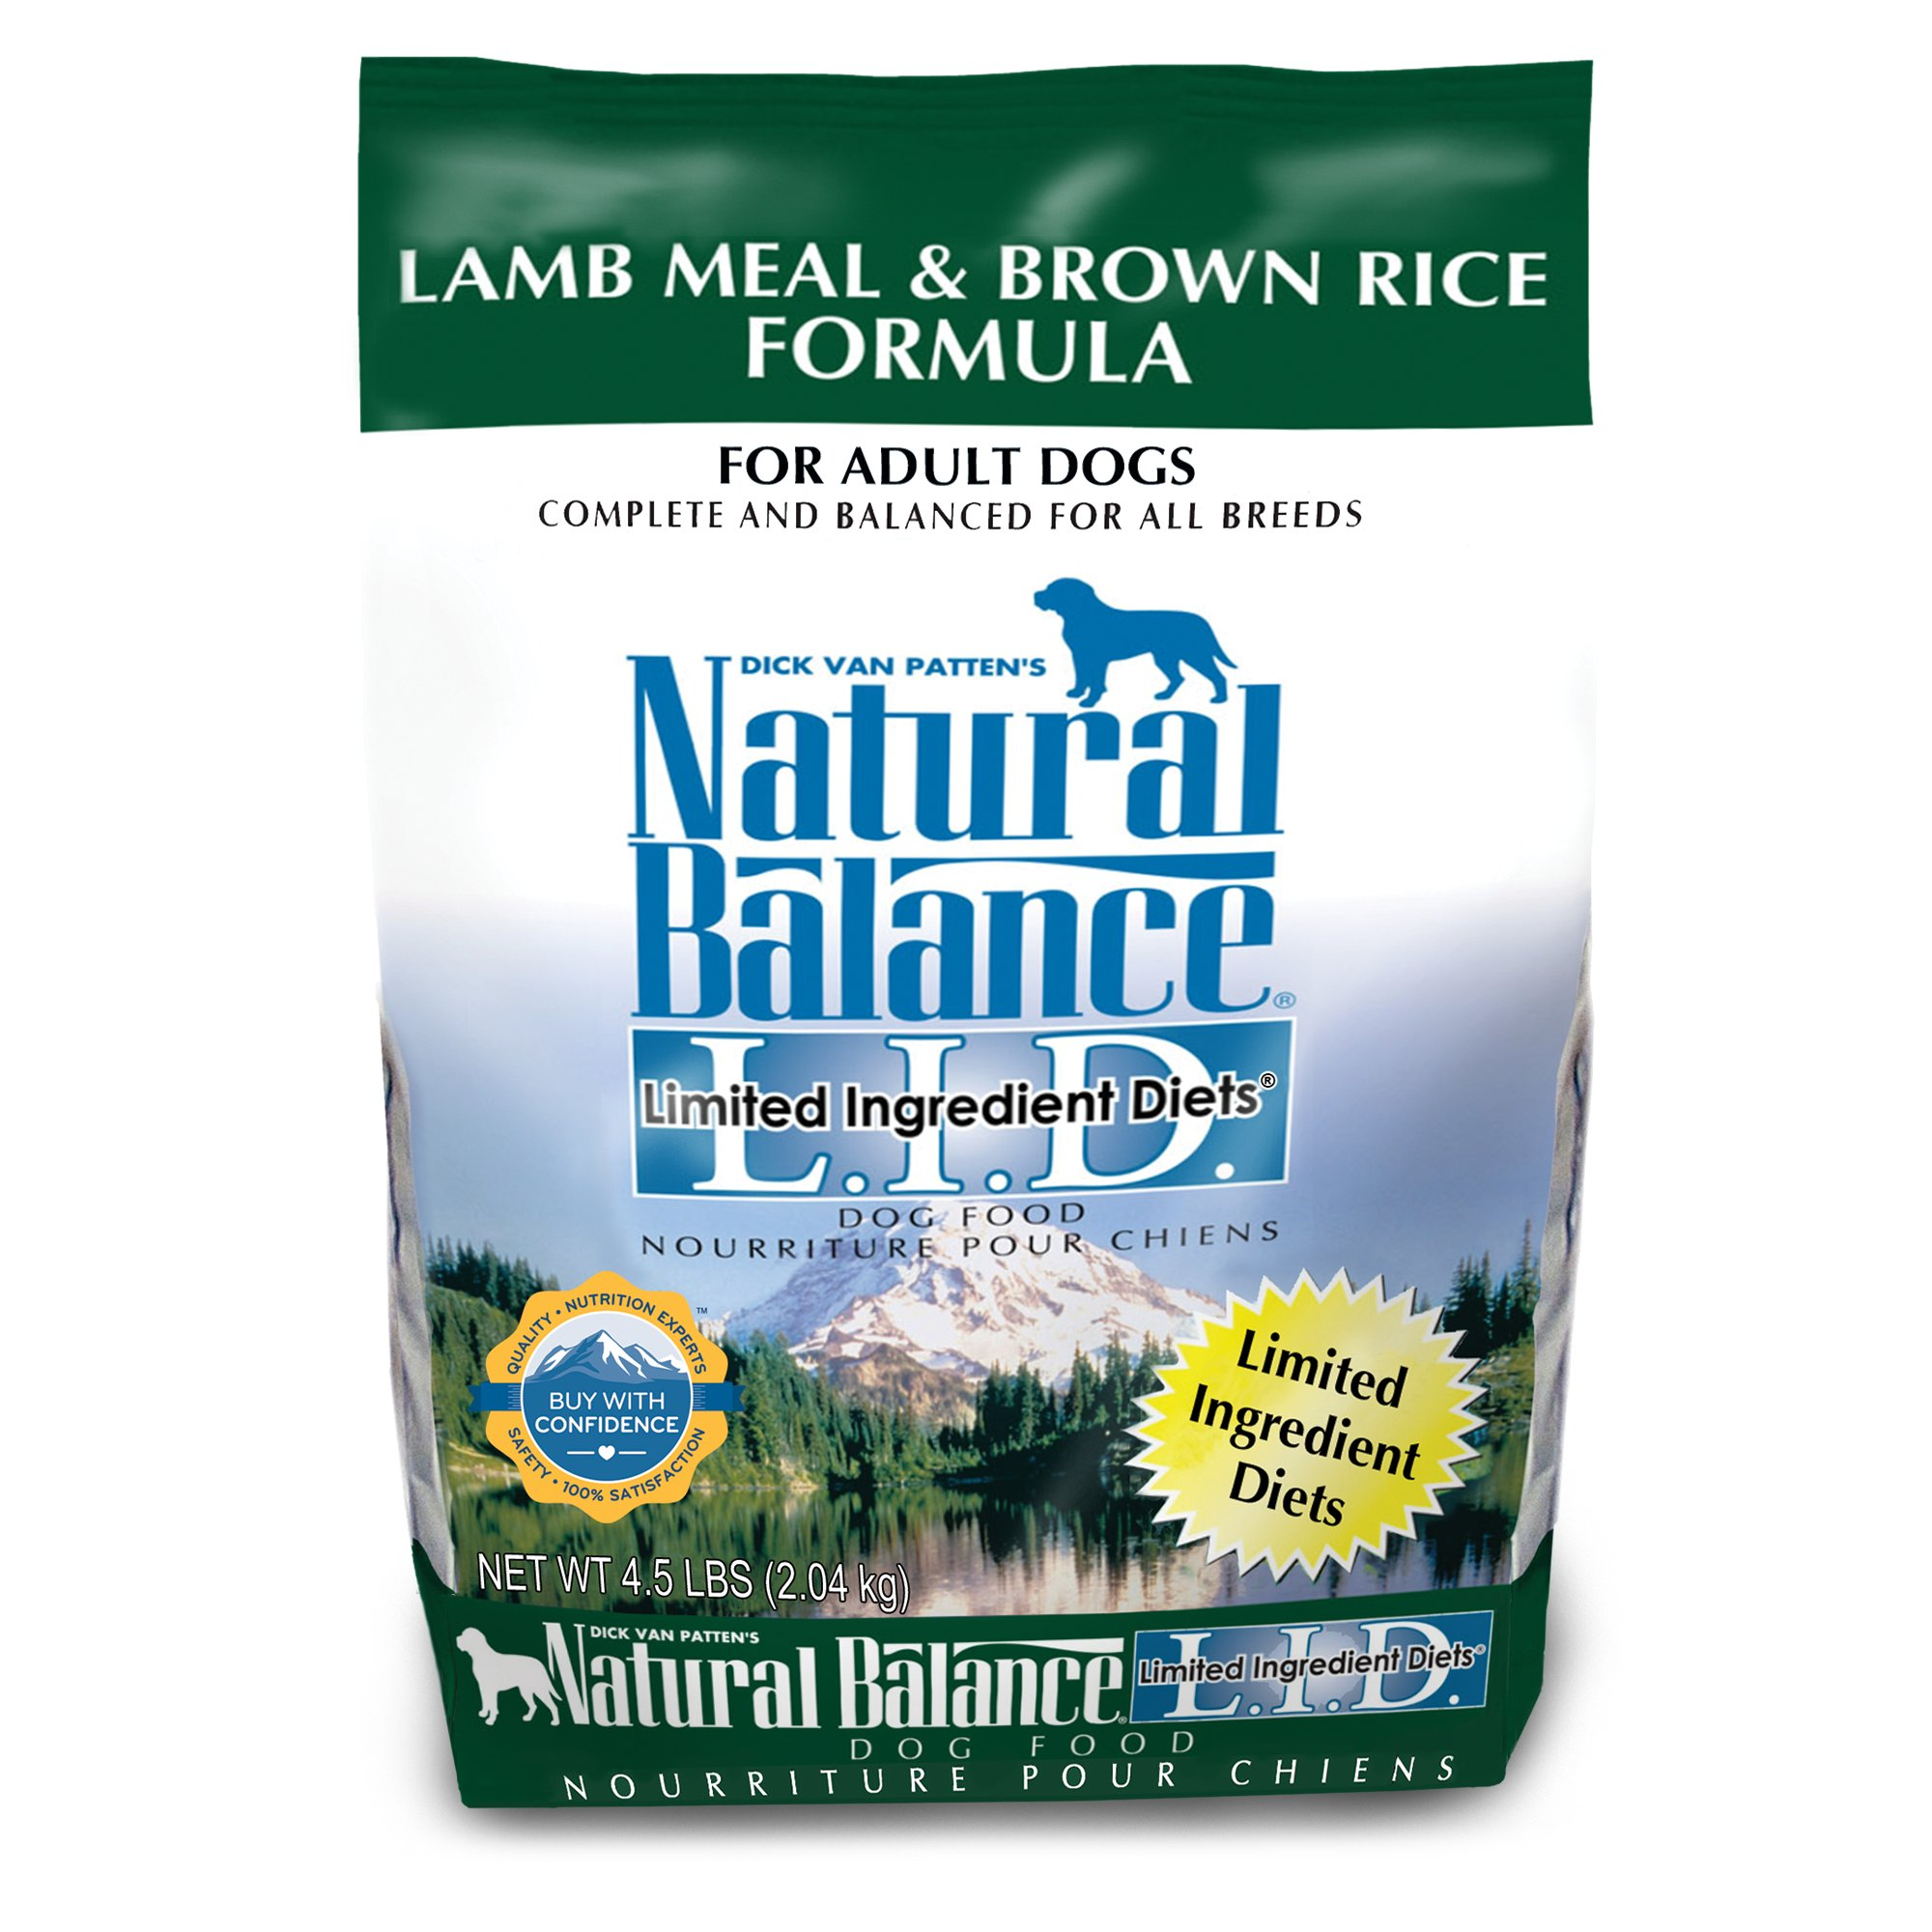 Natural Balance L.I.D. Limited Ingredient Diets Lamb Meal & Brown Rice Dog Food, 4.5 lbs.